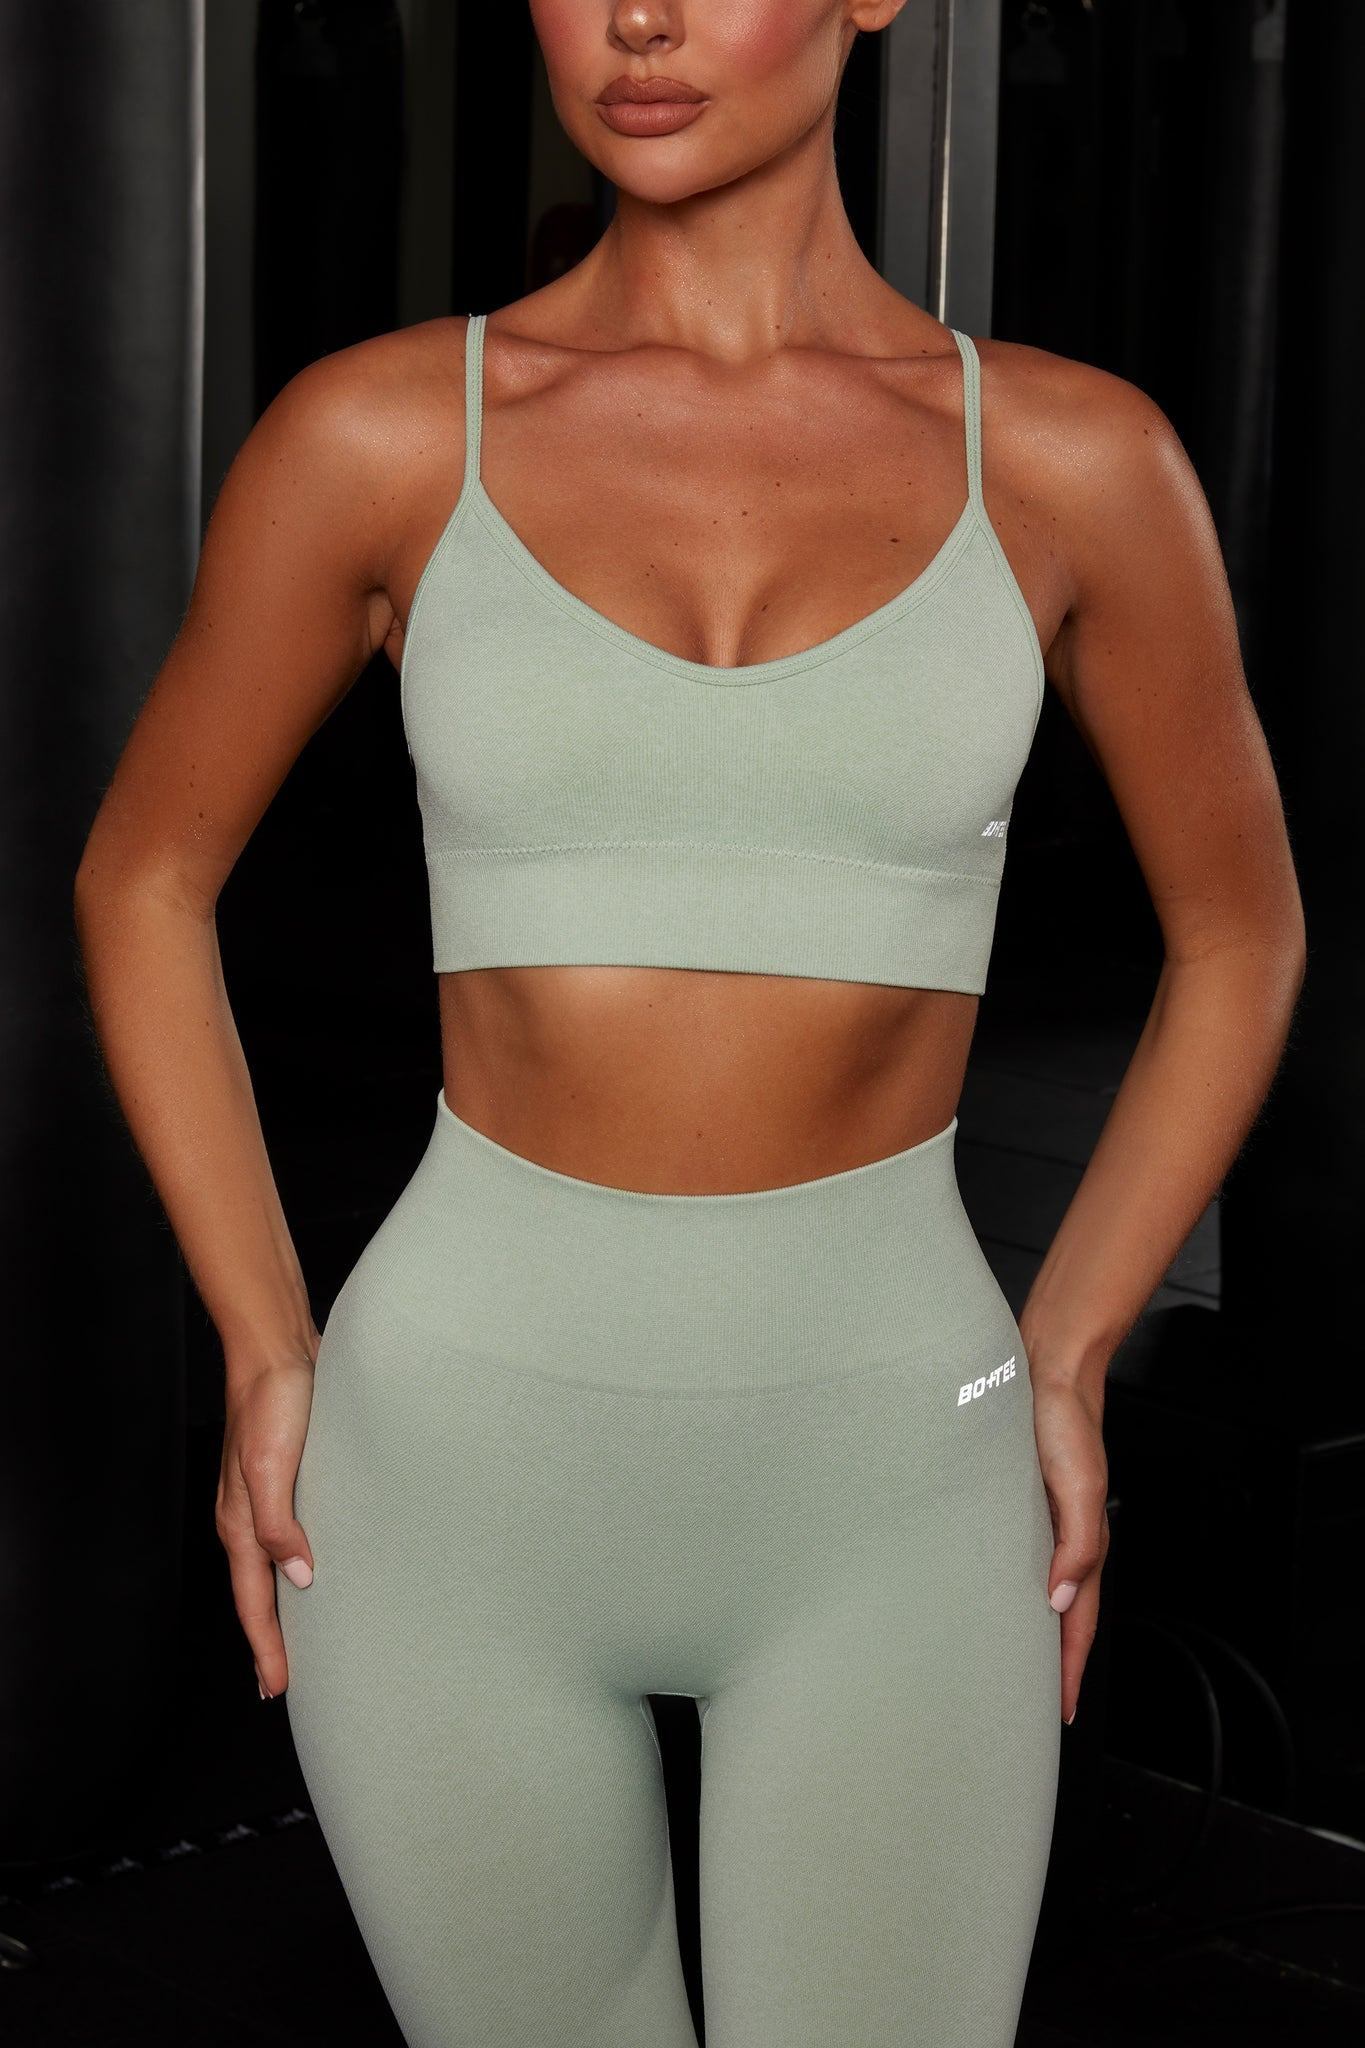 Plain light green melange V neck sports bra with ribbed underband, reflective branding and thin adjustable straps. Image 4 of 6.